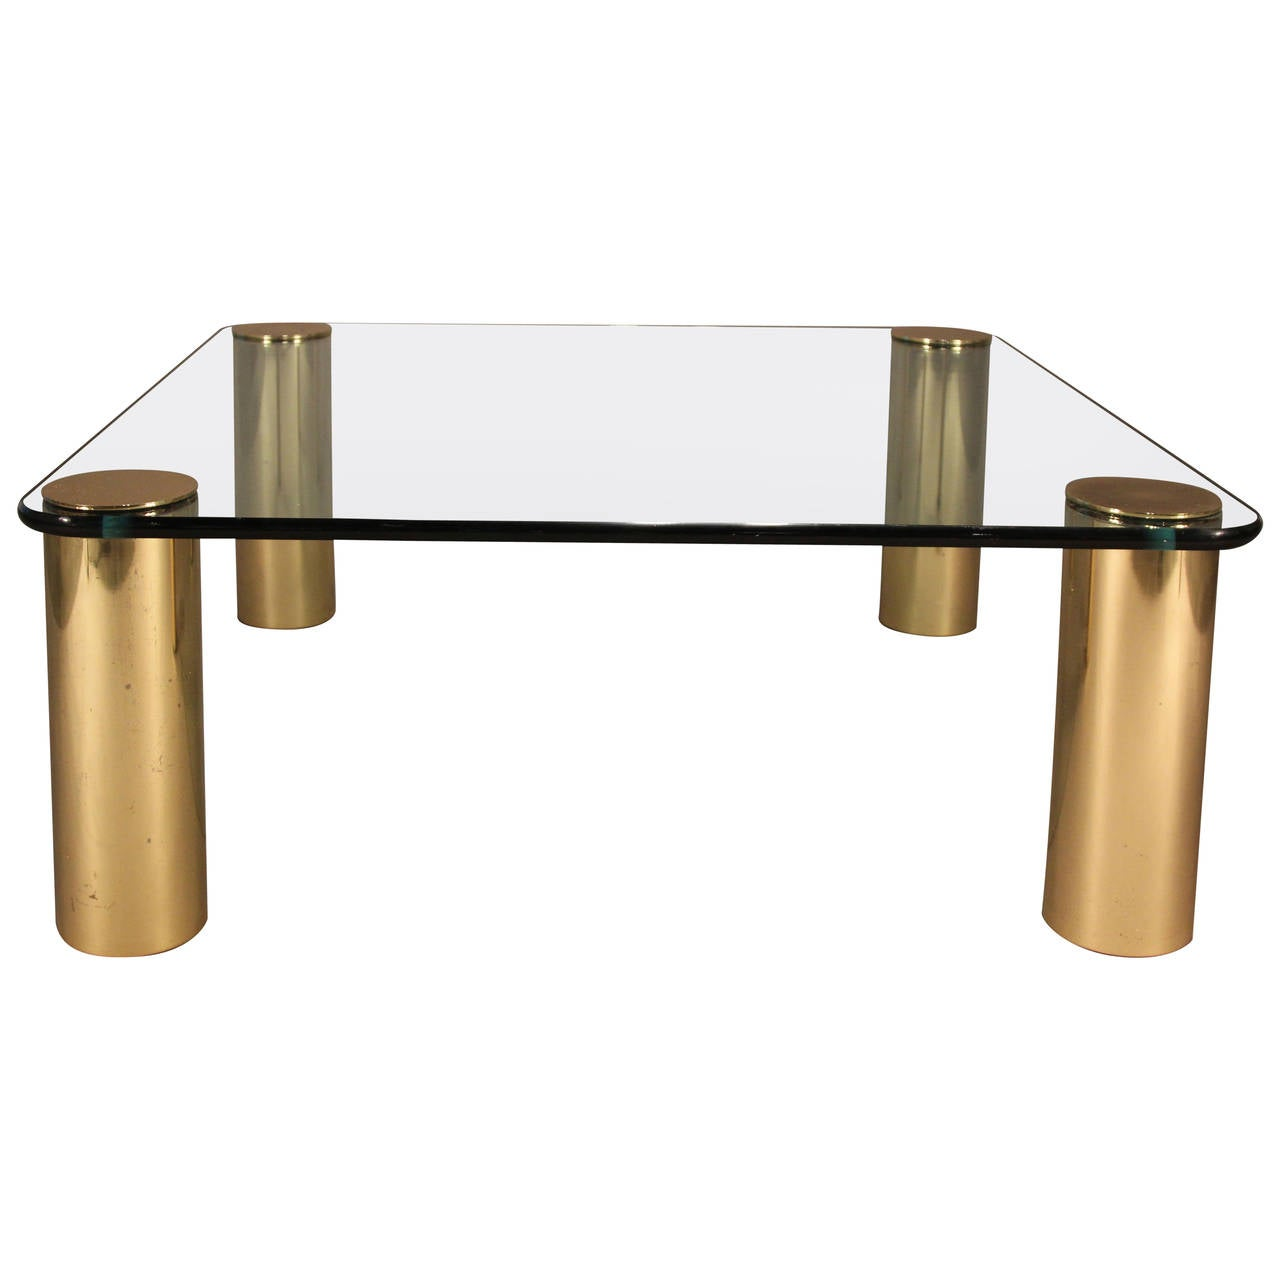 Pace coffee table with brass legs and glass top at 1stdibs Legs for a coffee table